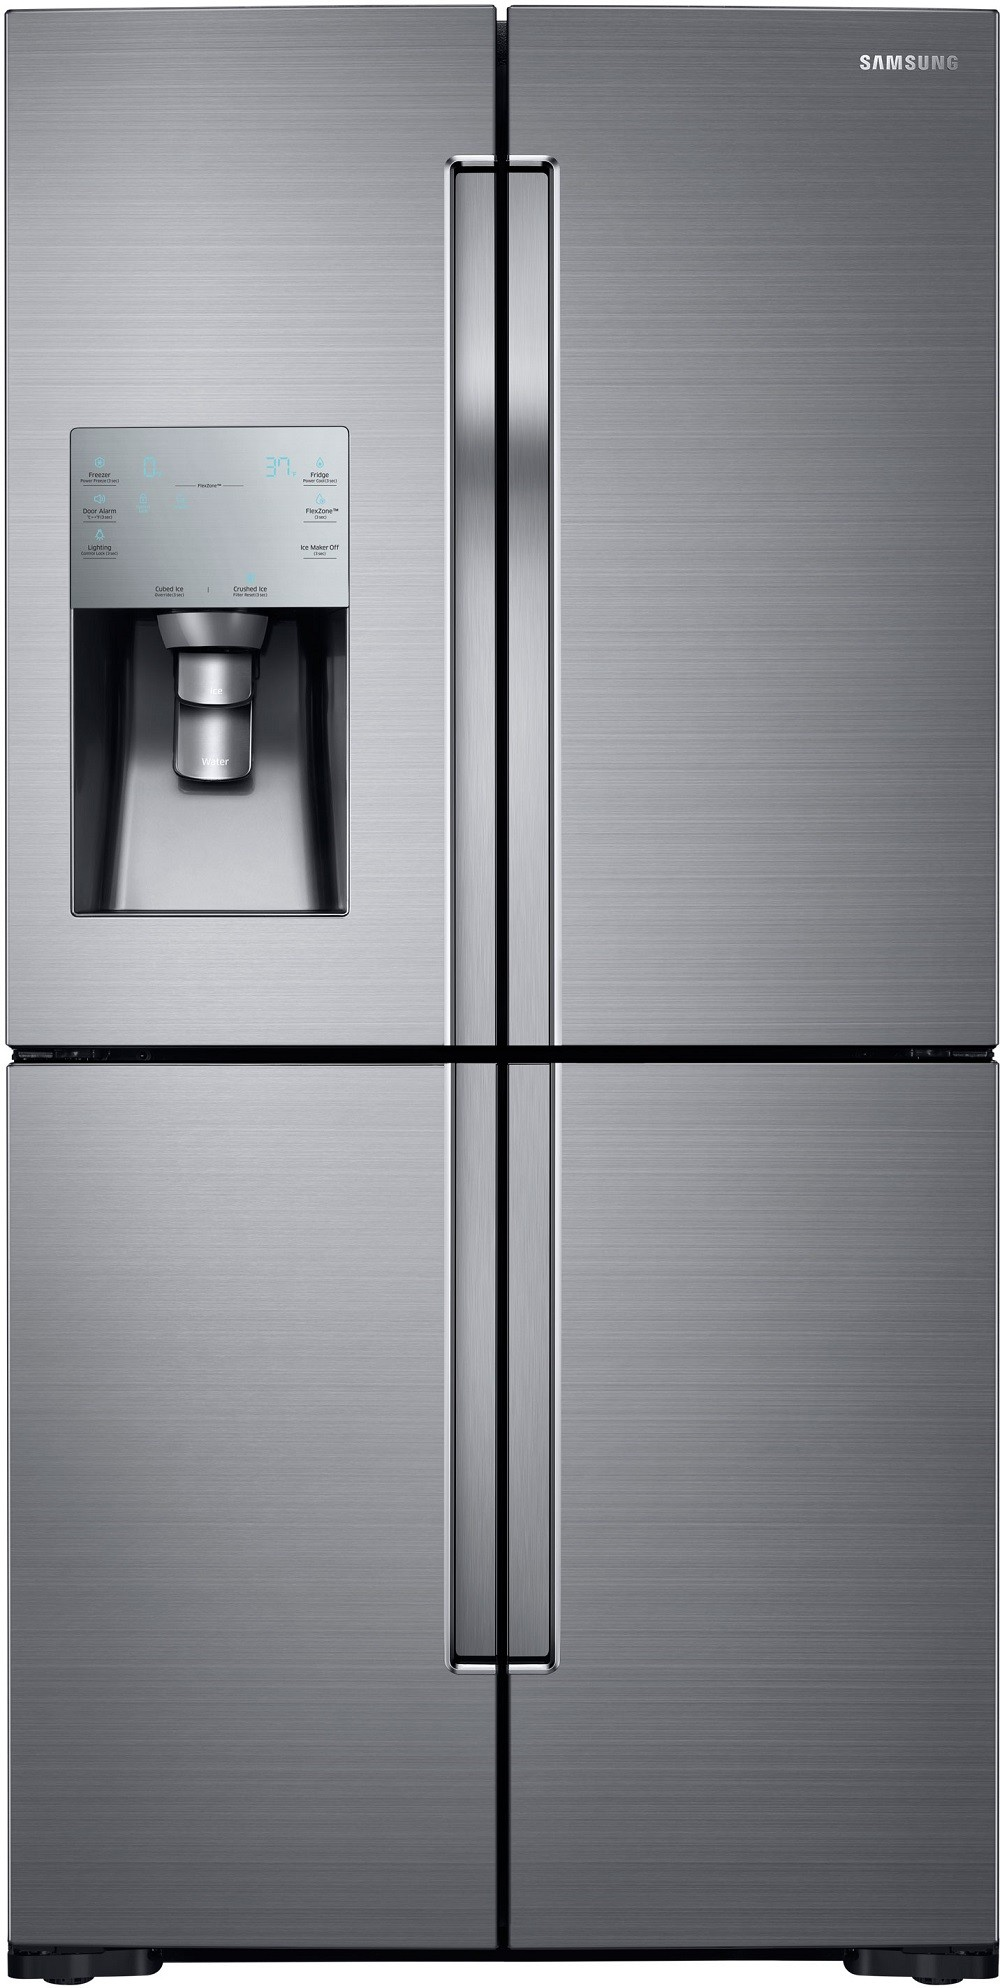 Samsung SARERADWMW5064 in 2019 French door refrigerator